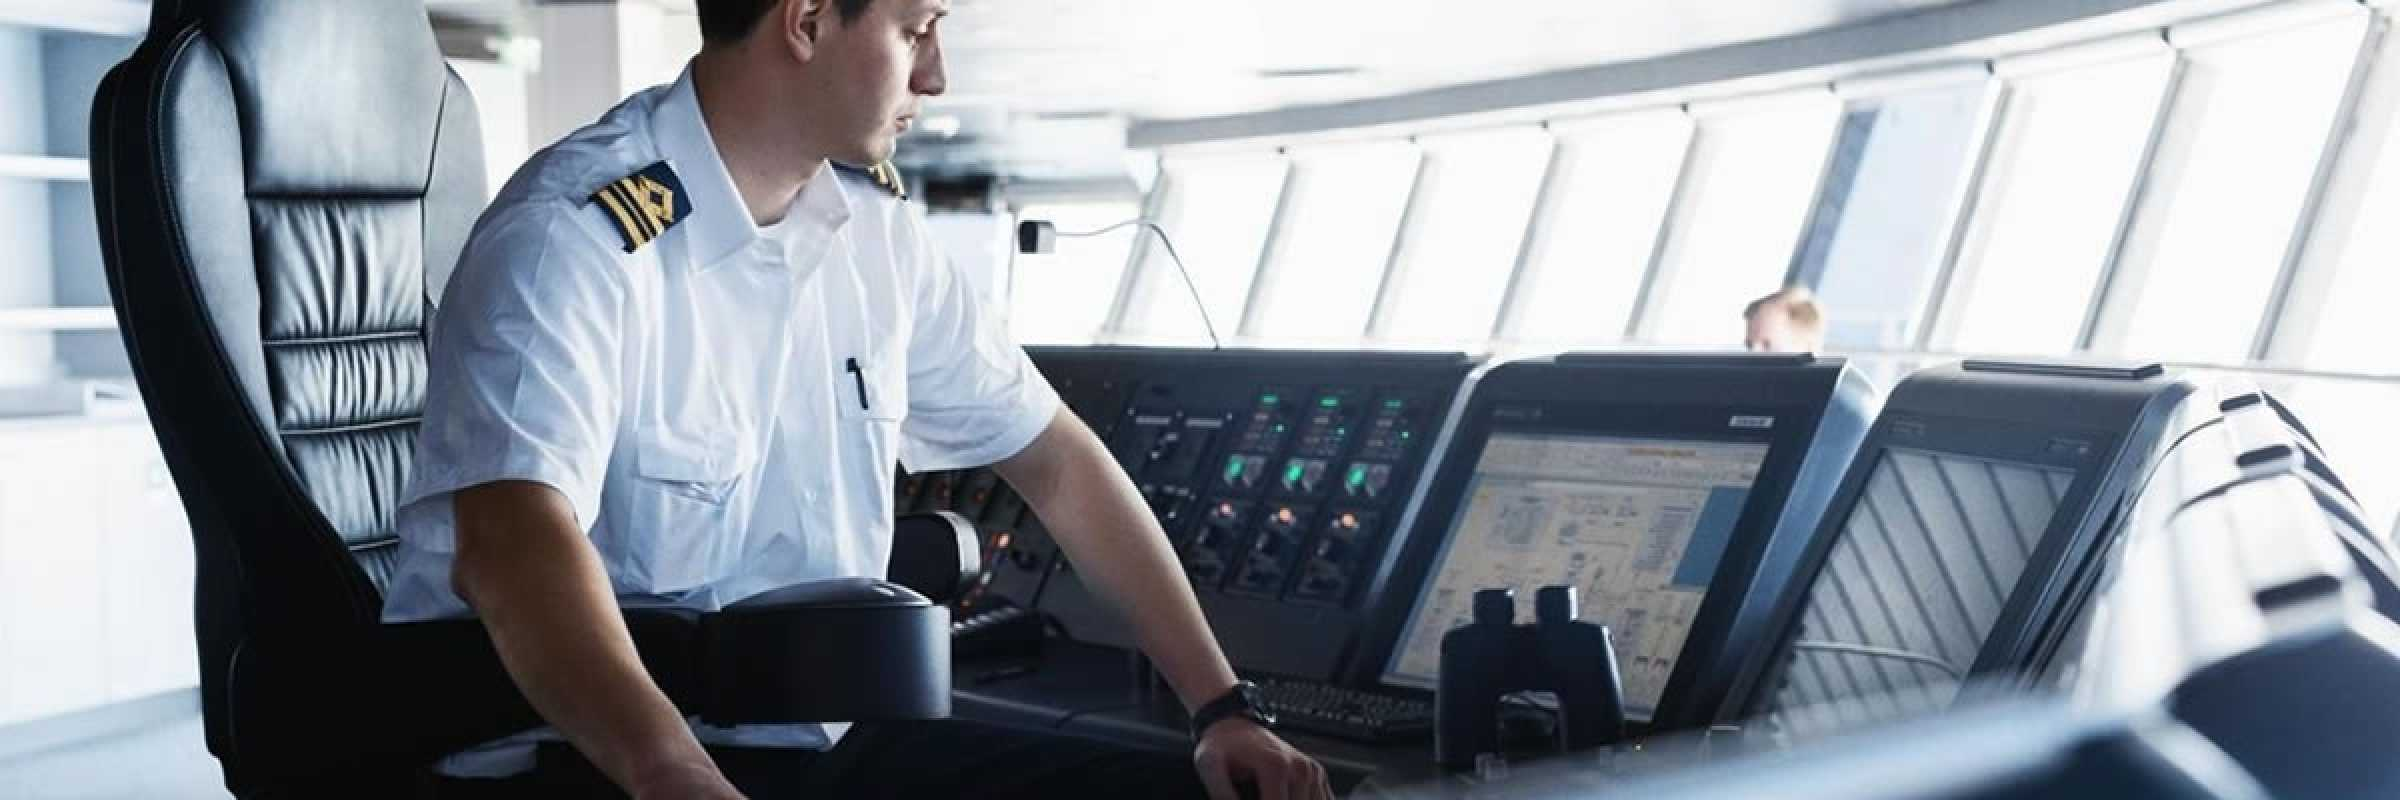 Wärtsilä Propulsion Control & Automation System to deliver fuel savings for new tankers